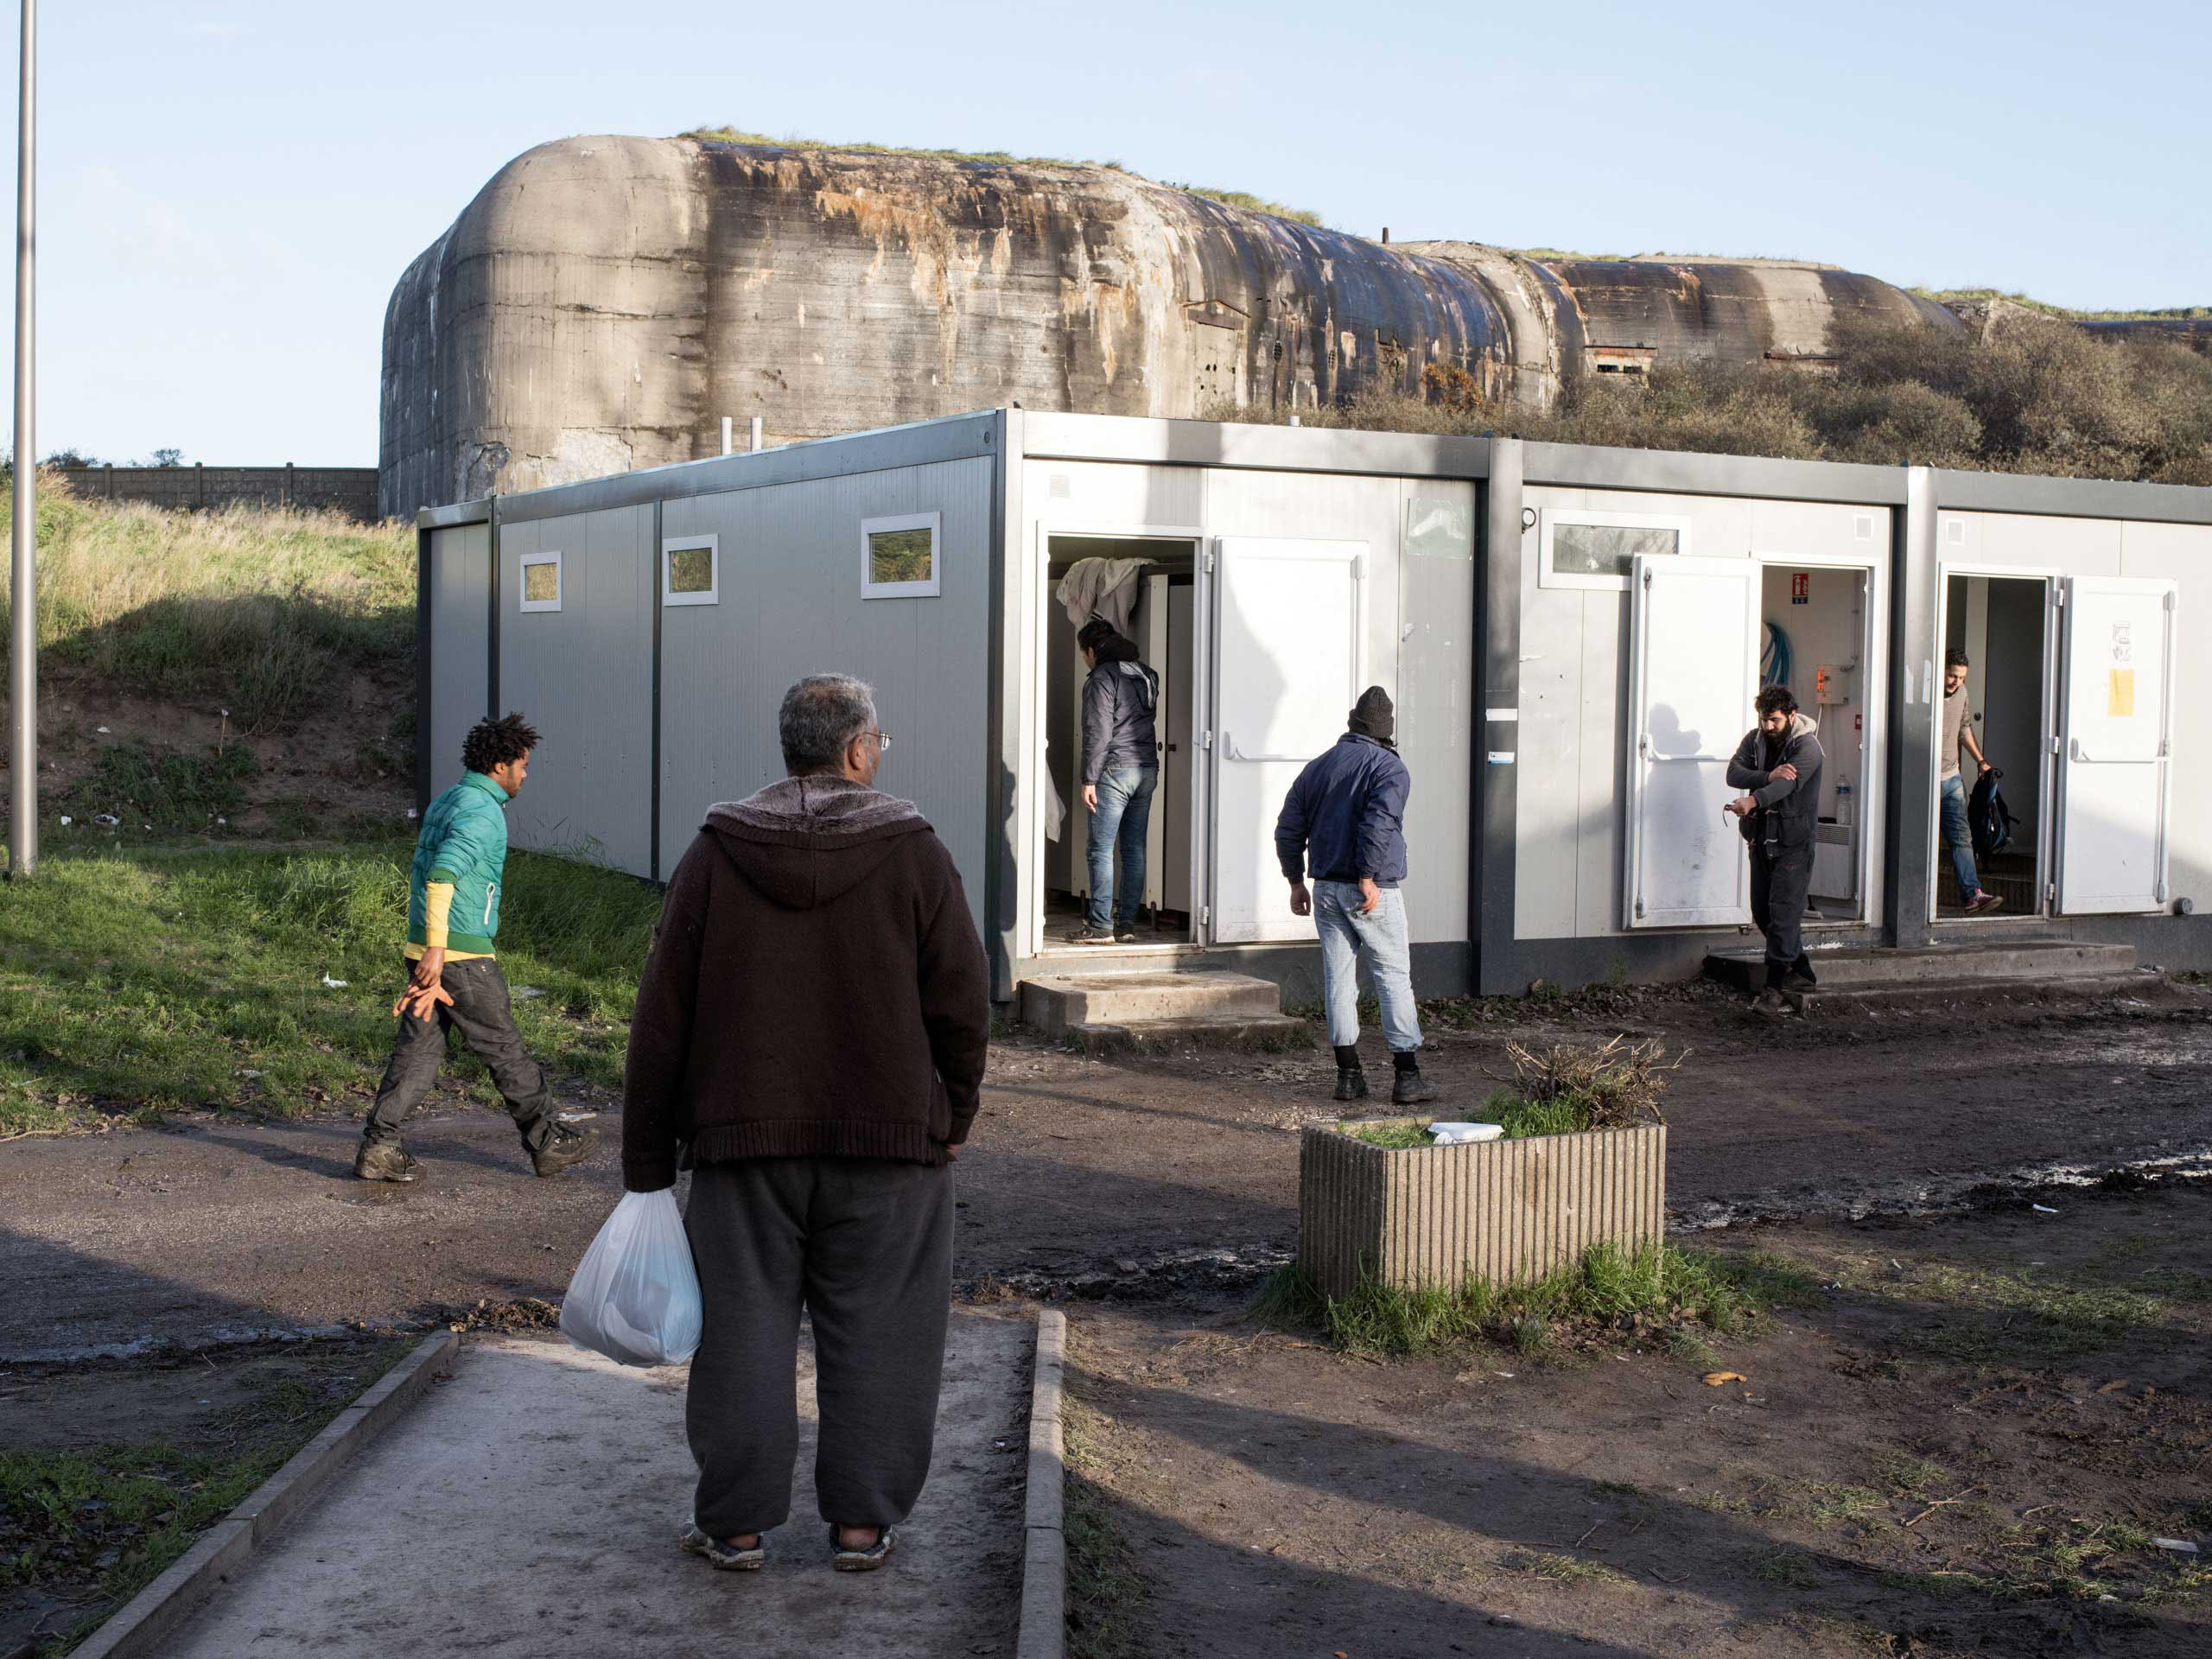 Facilities, including showers and mobile phone rechargers, are available to migrants during the day at the Jules Ferry Center in Calais, France, Nov. 25, 2015.